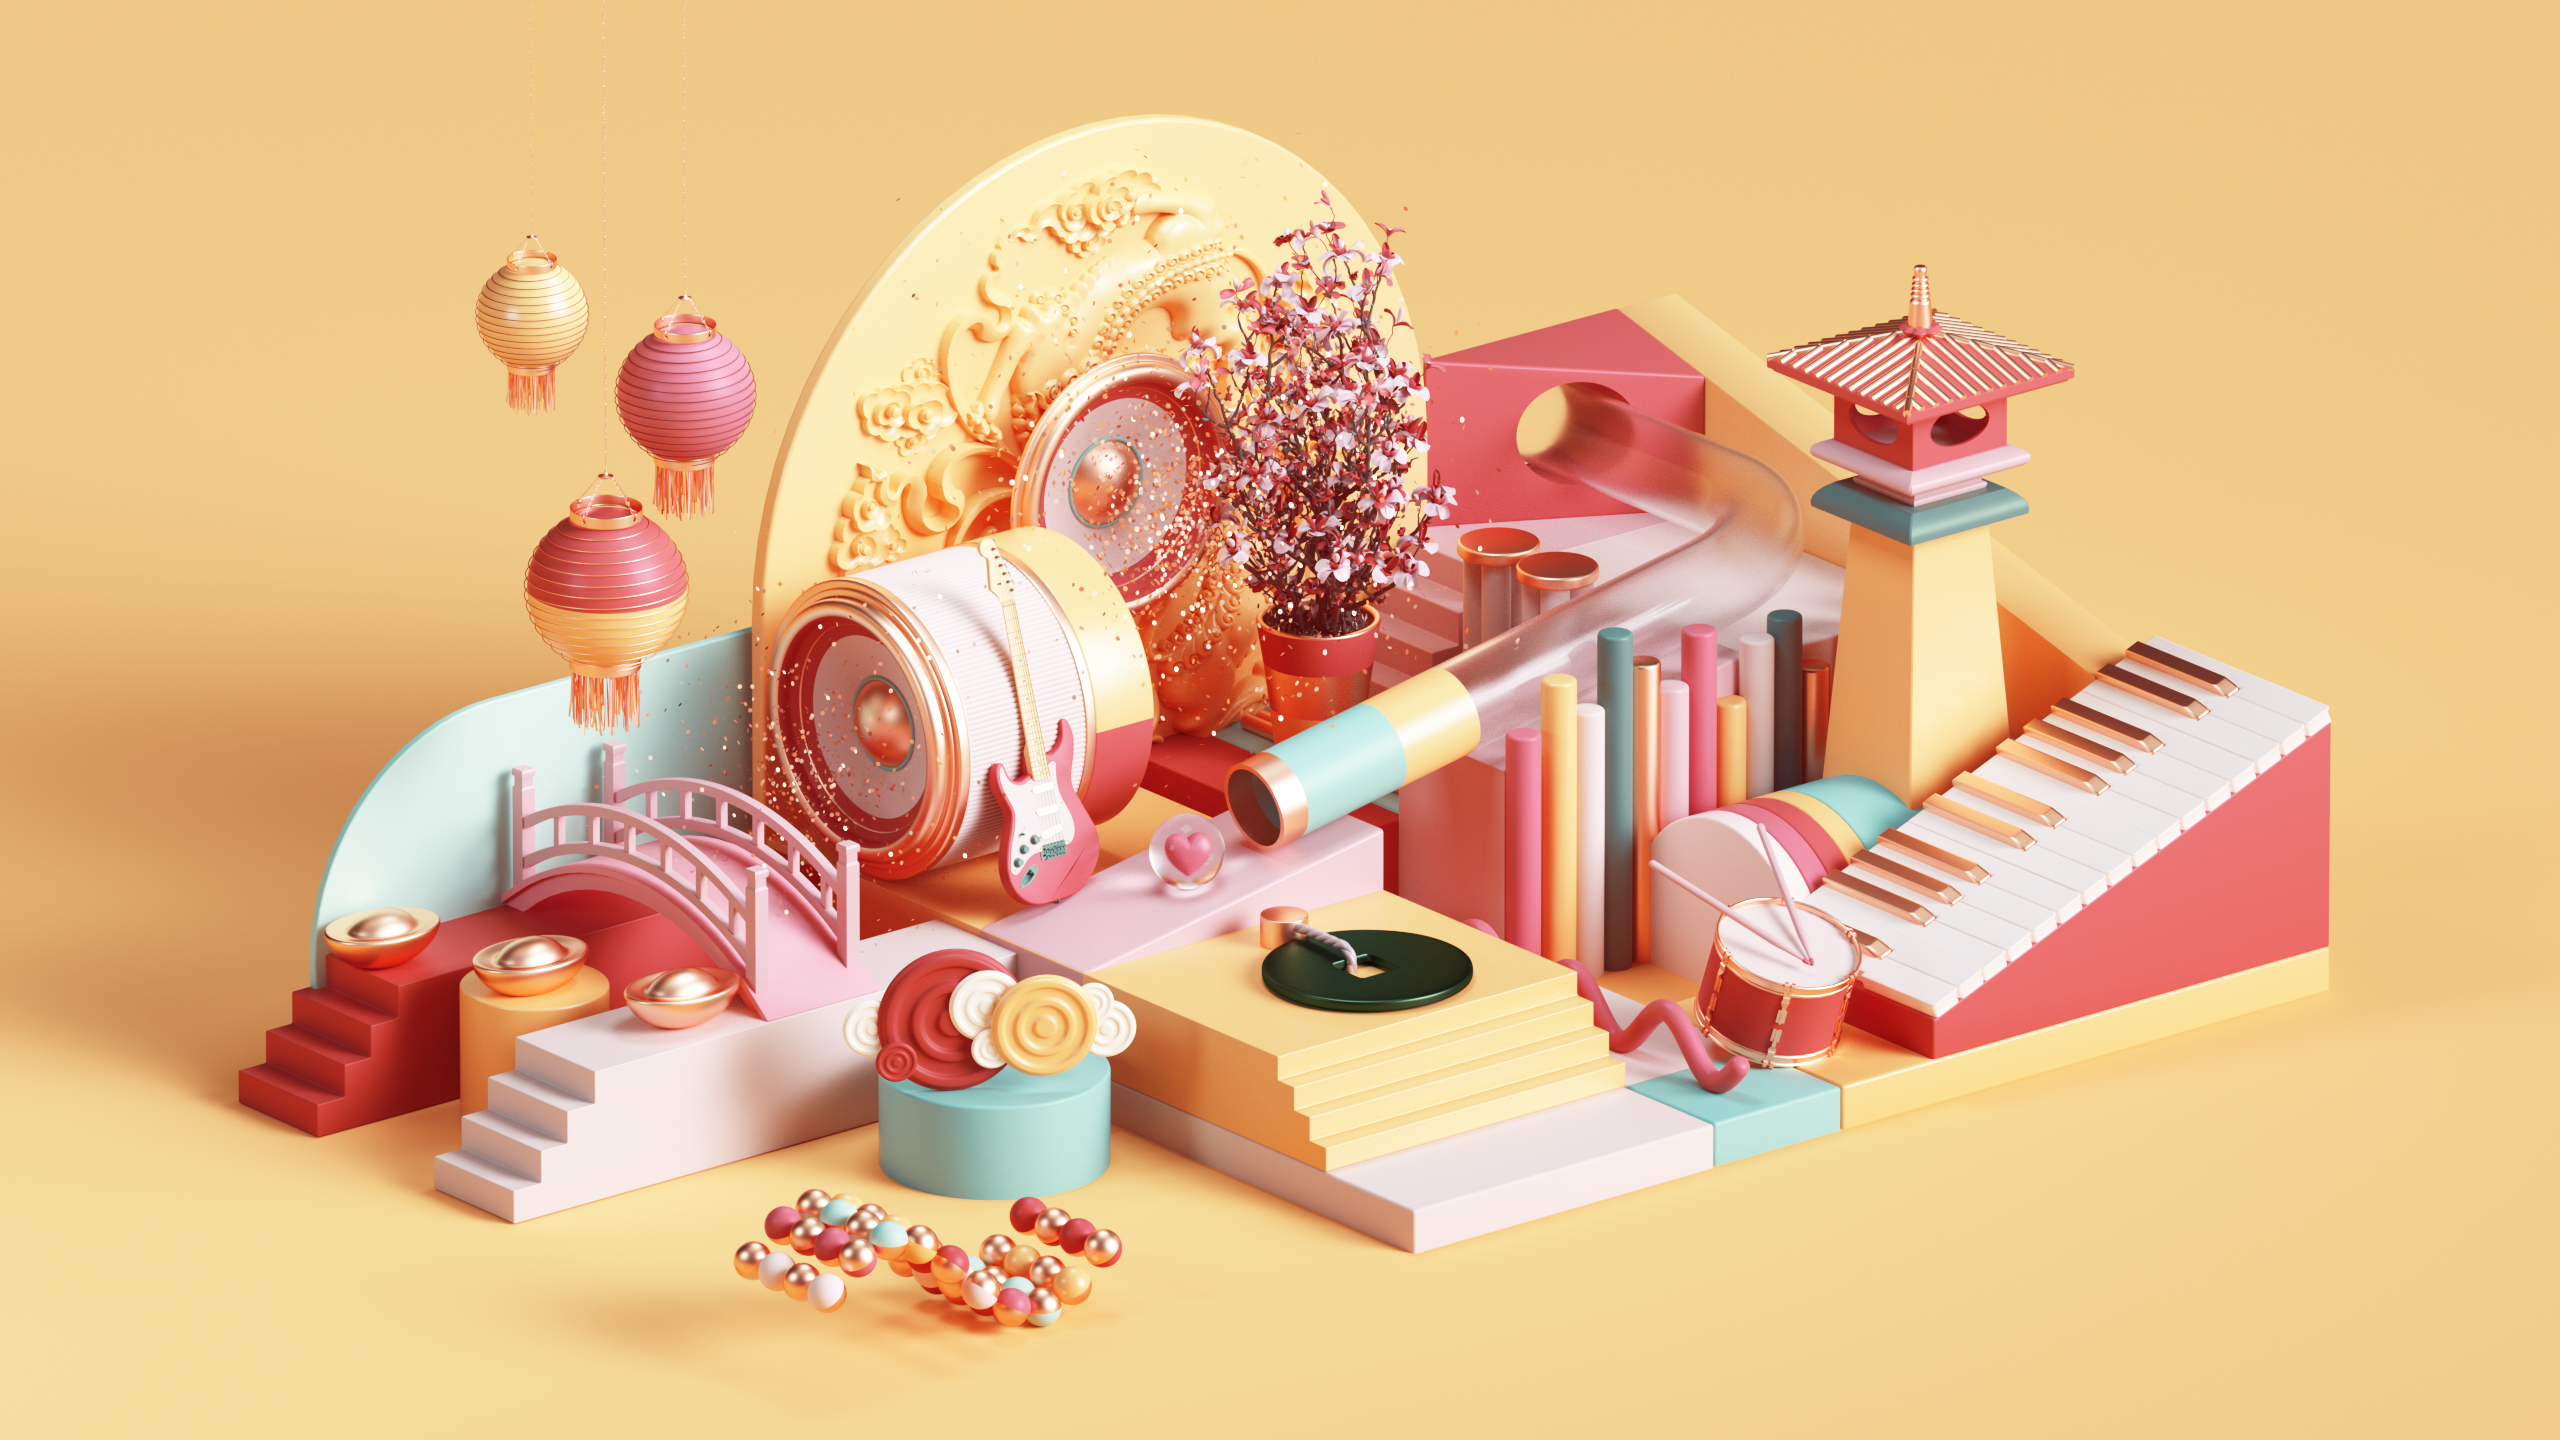 Art Direction and Illustration and Digital Art